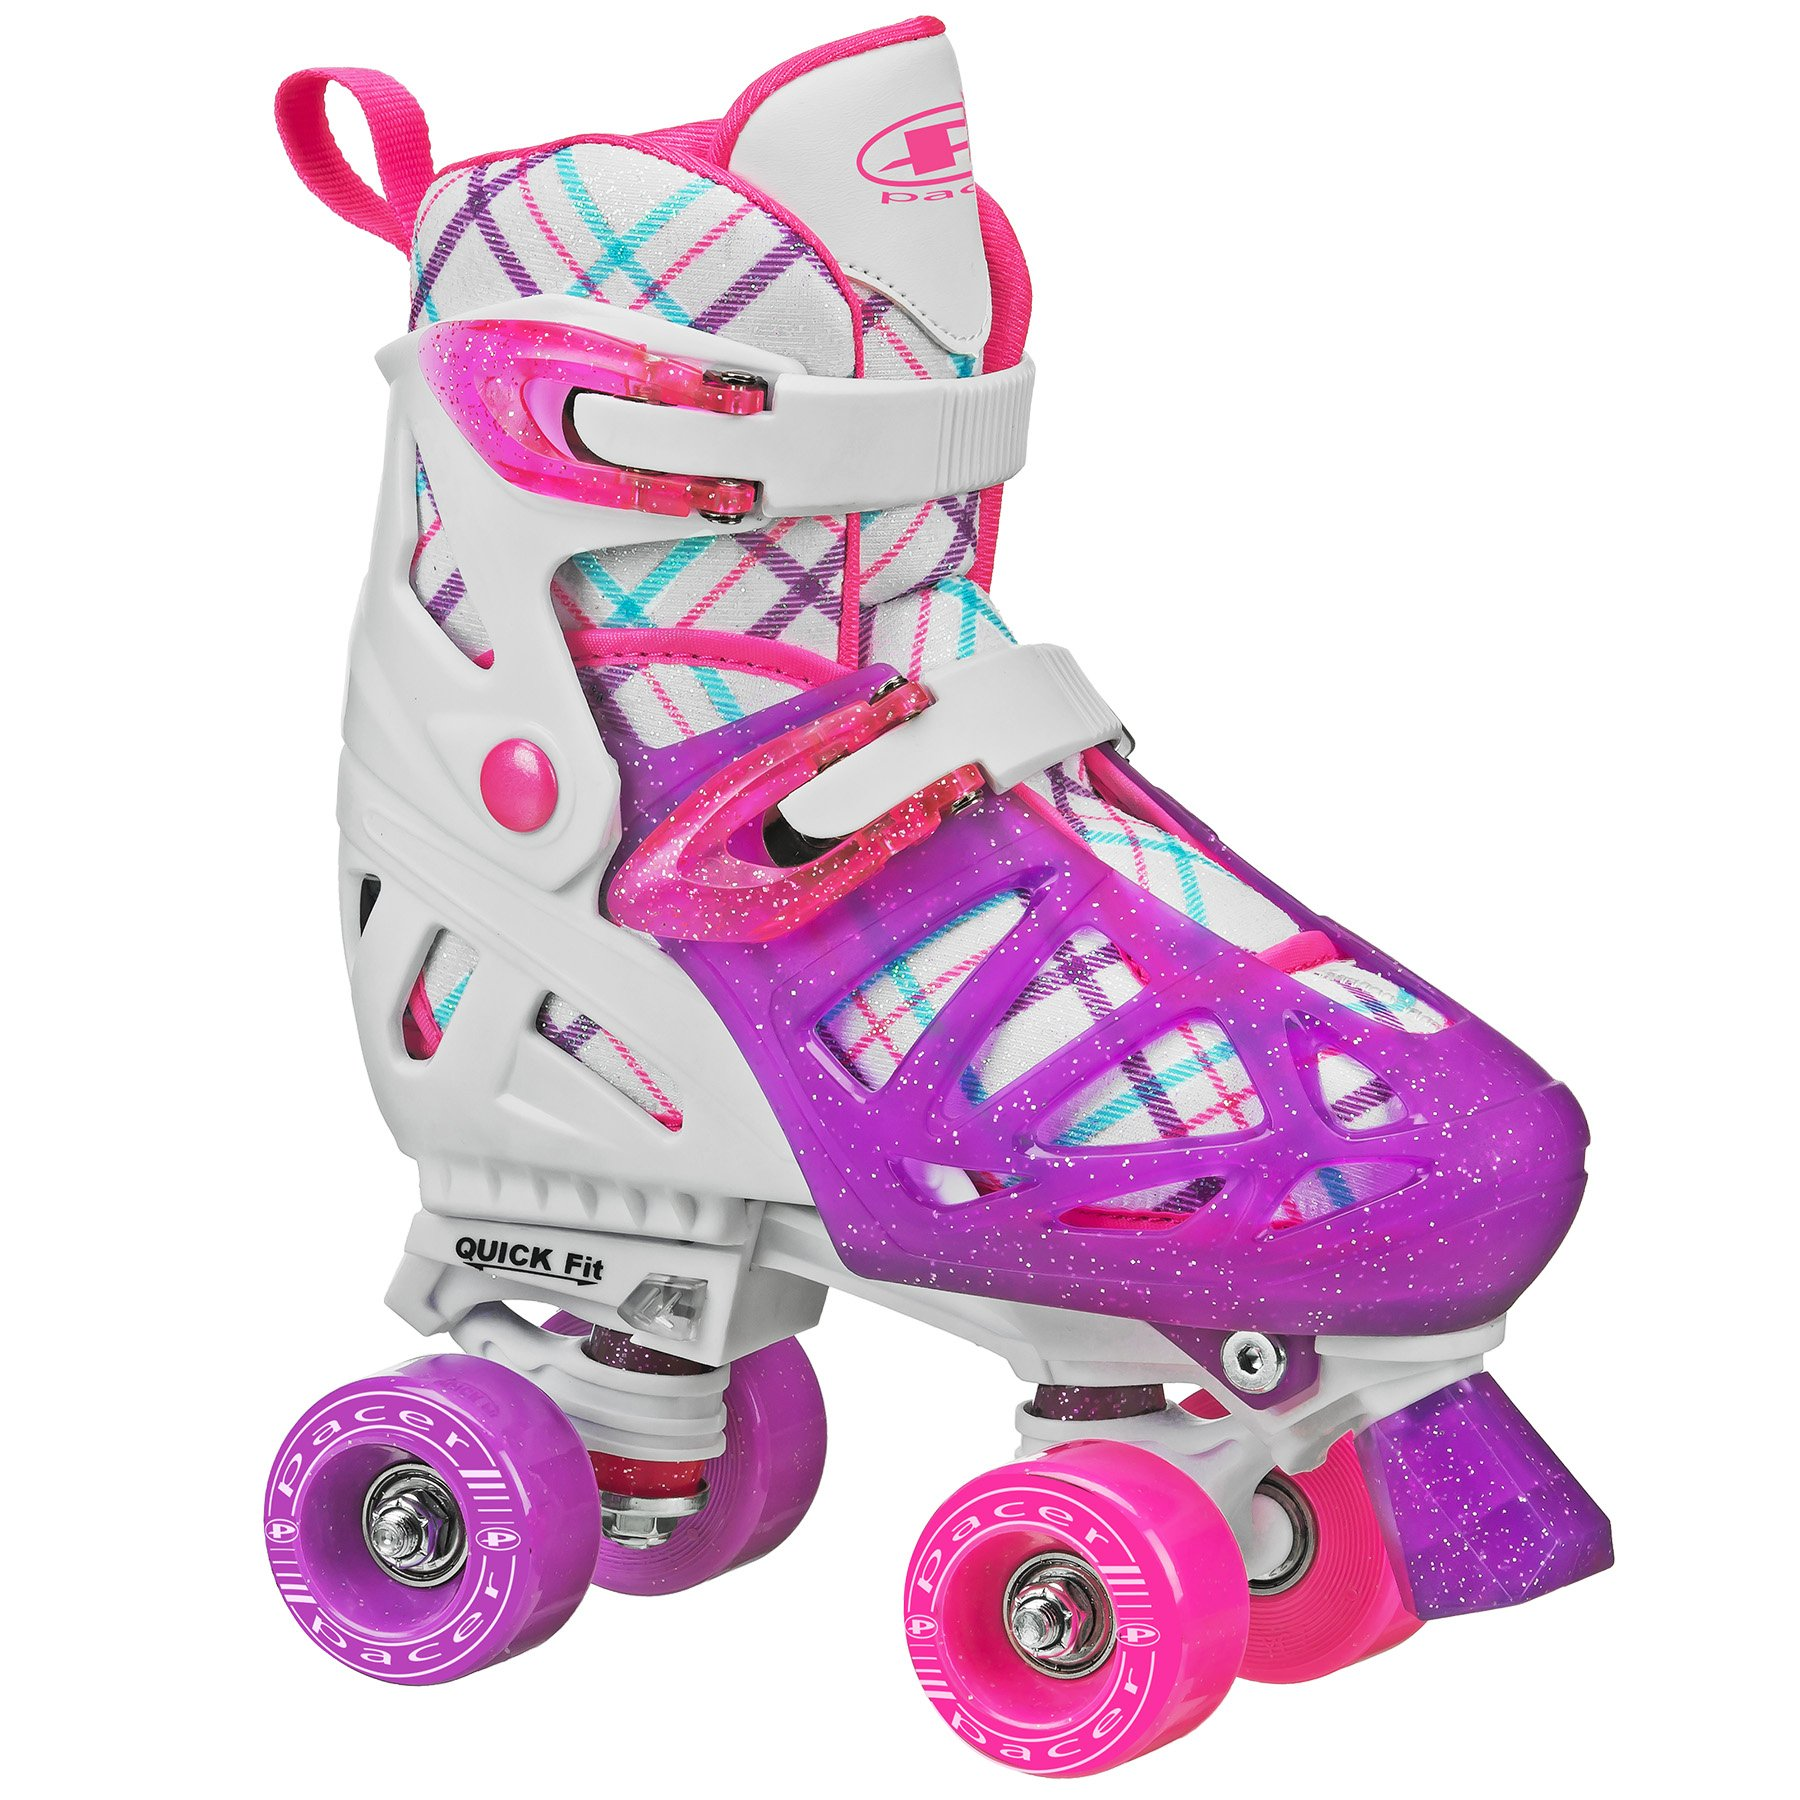 Pacer XT70 Adjustable Artistic Quad Roller Skates for Youth Children (white small)